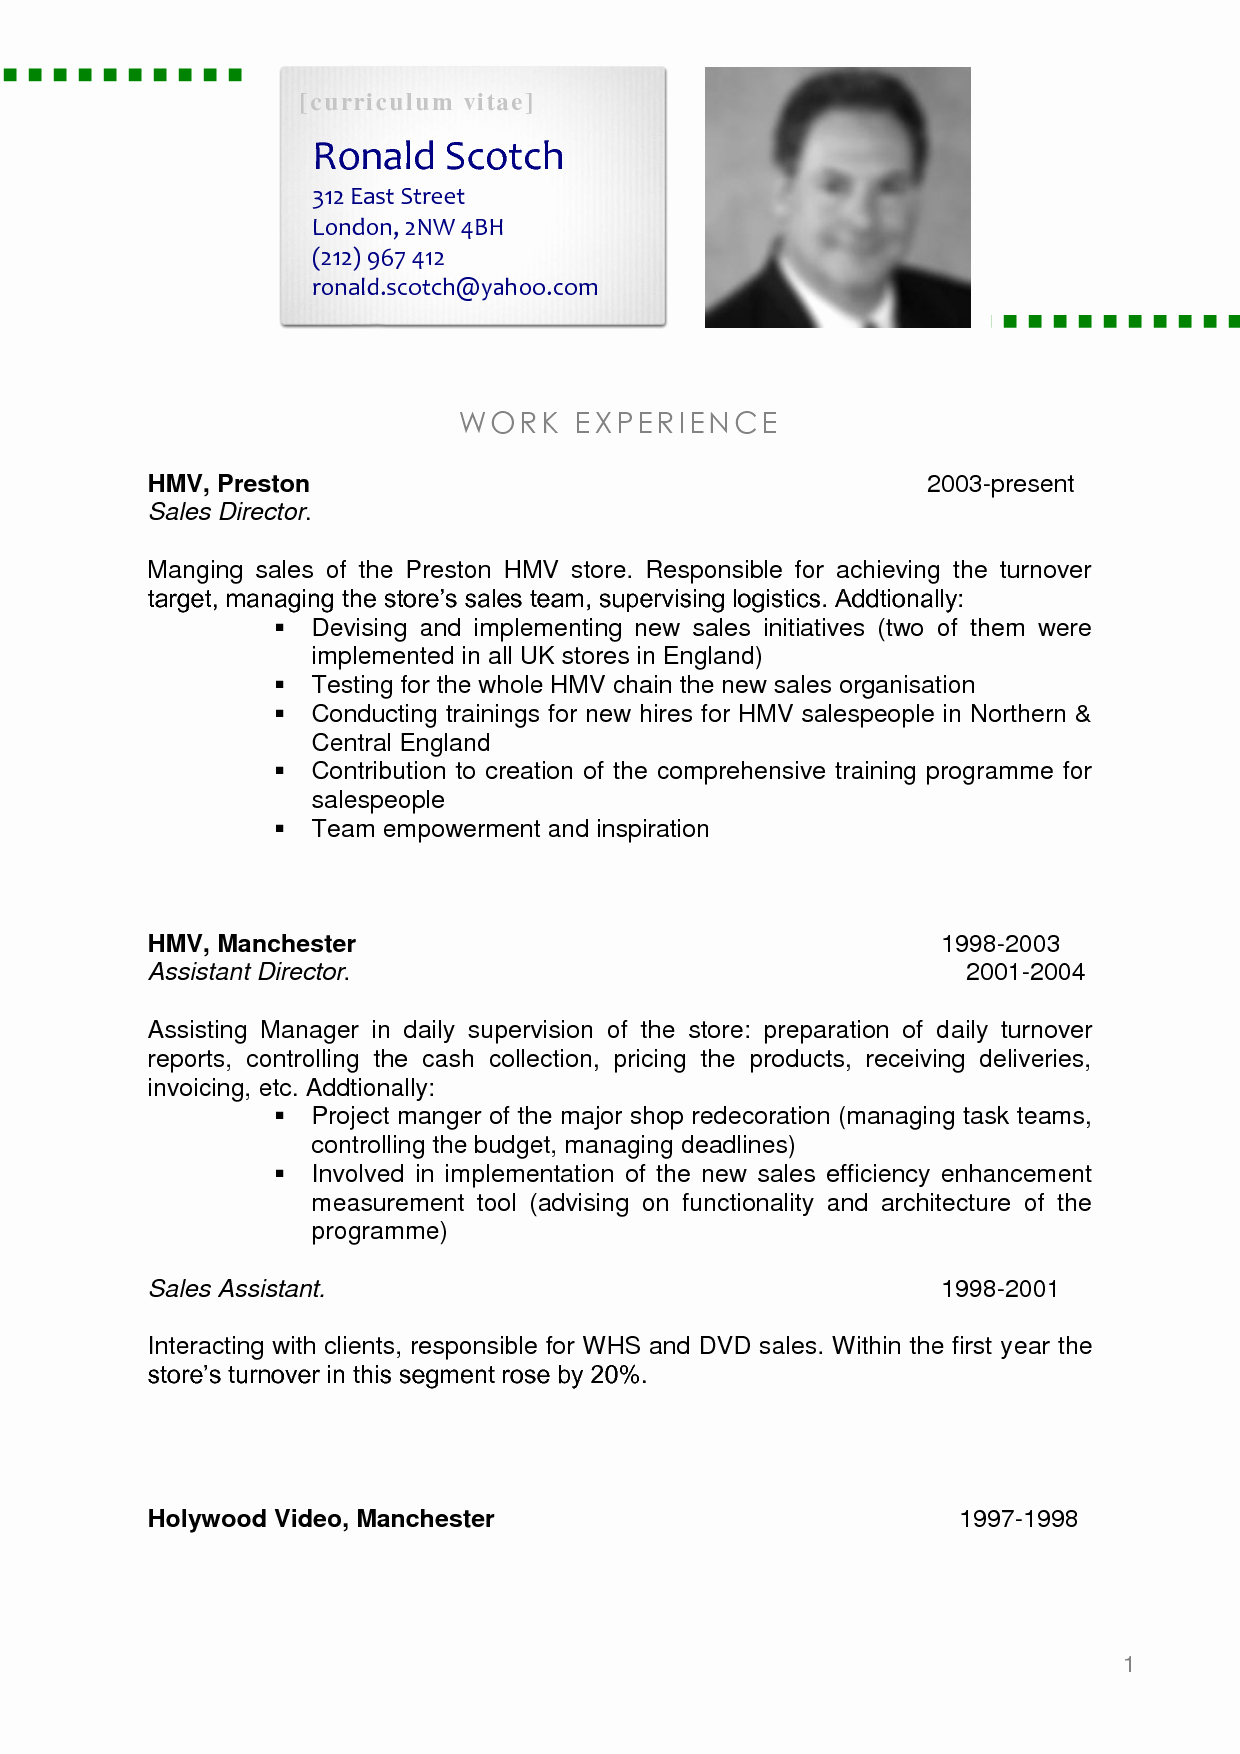 Sample Of Curriculum Vitae format Unique Sample Cv